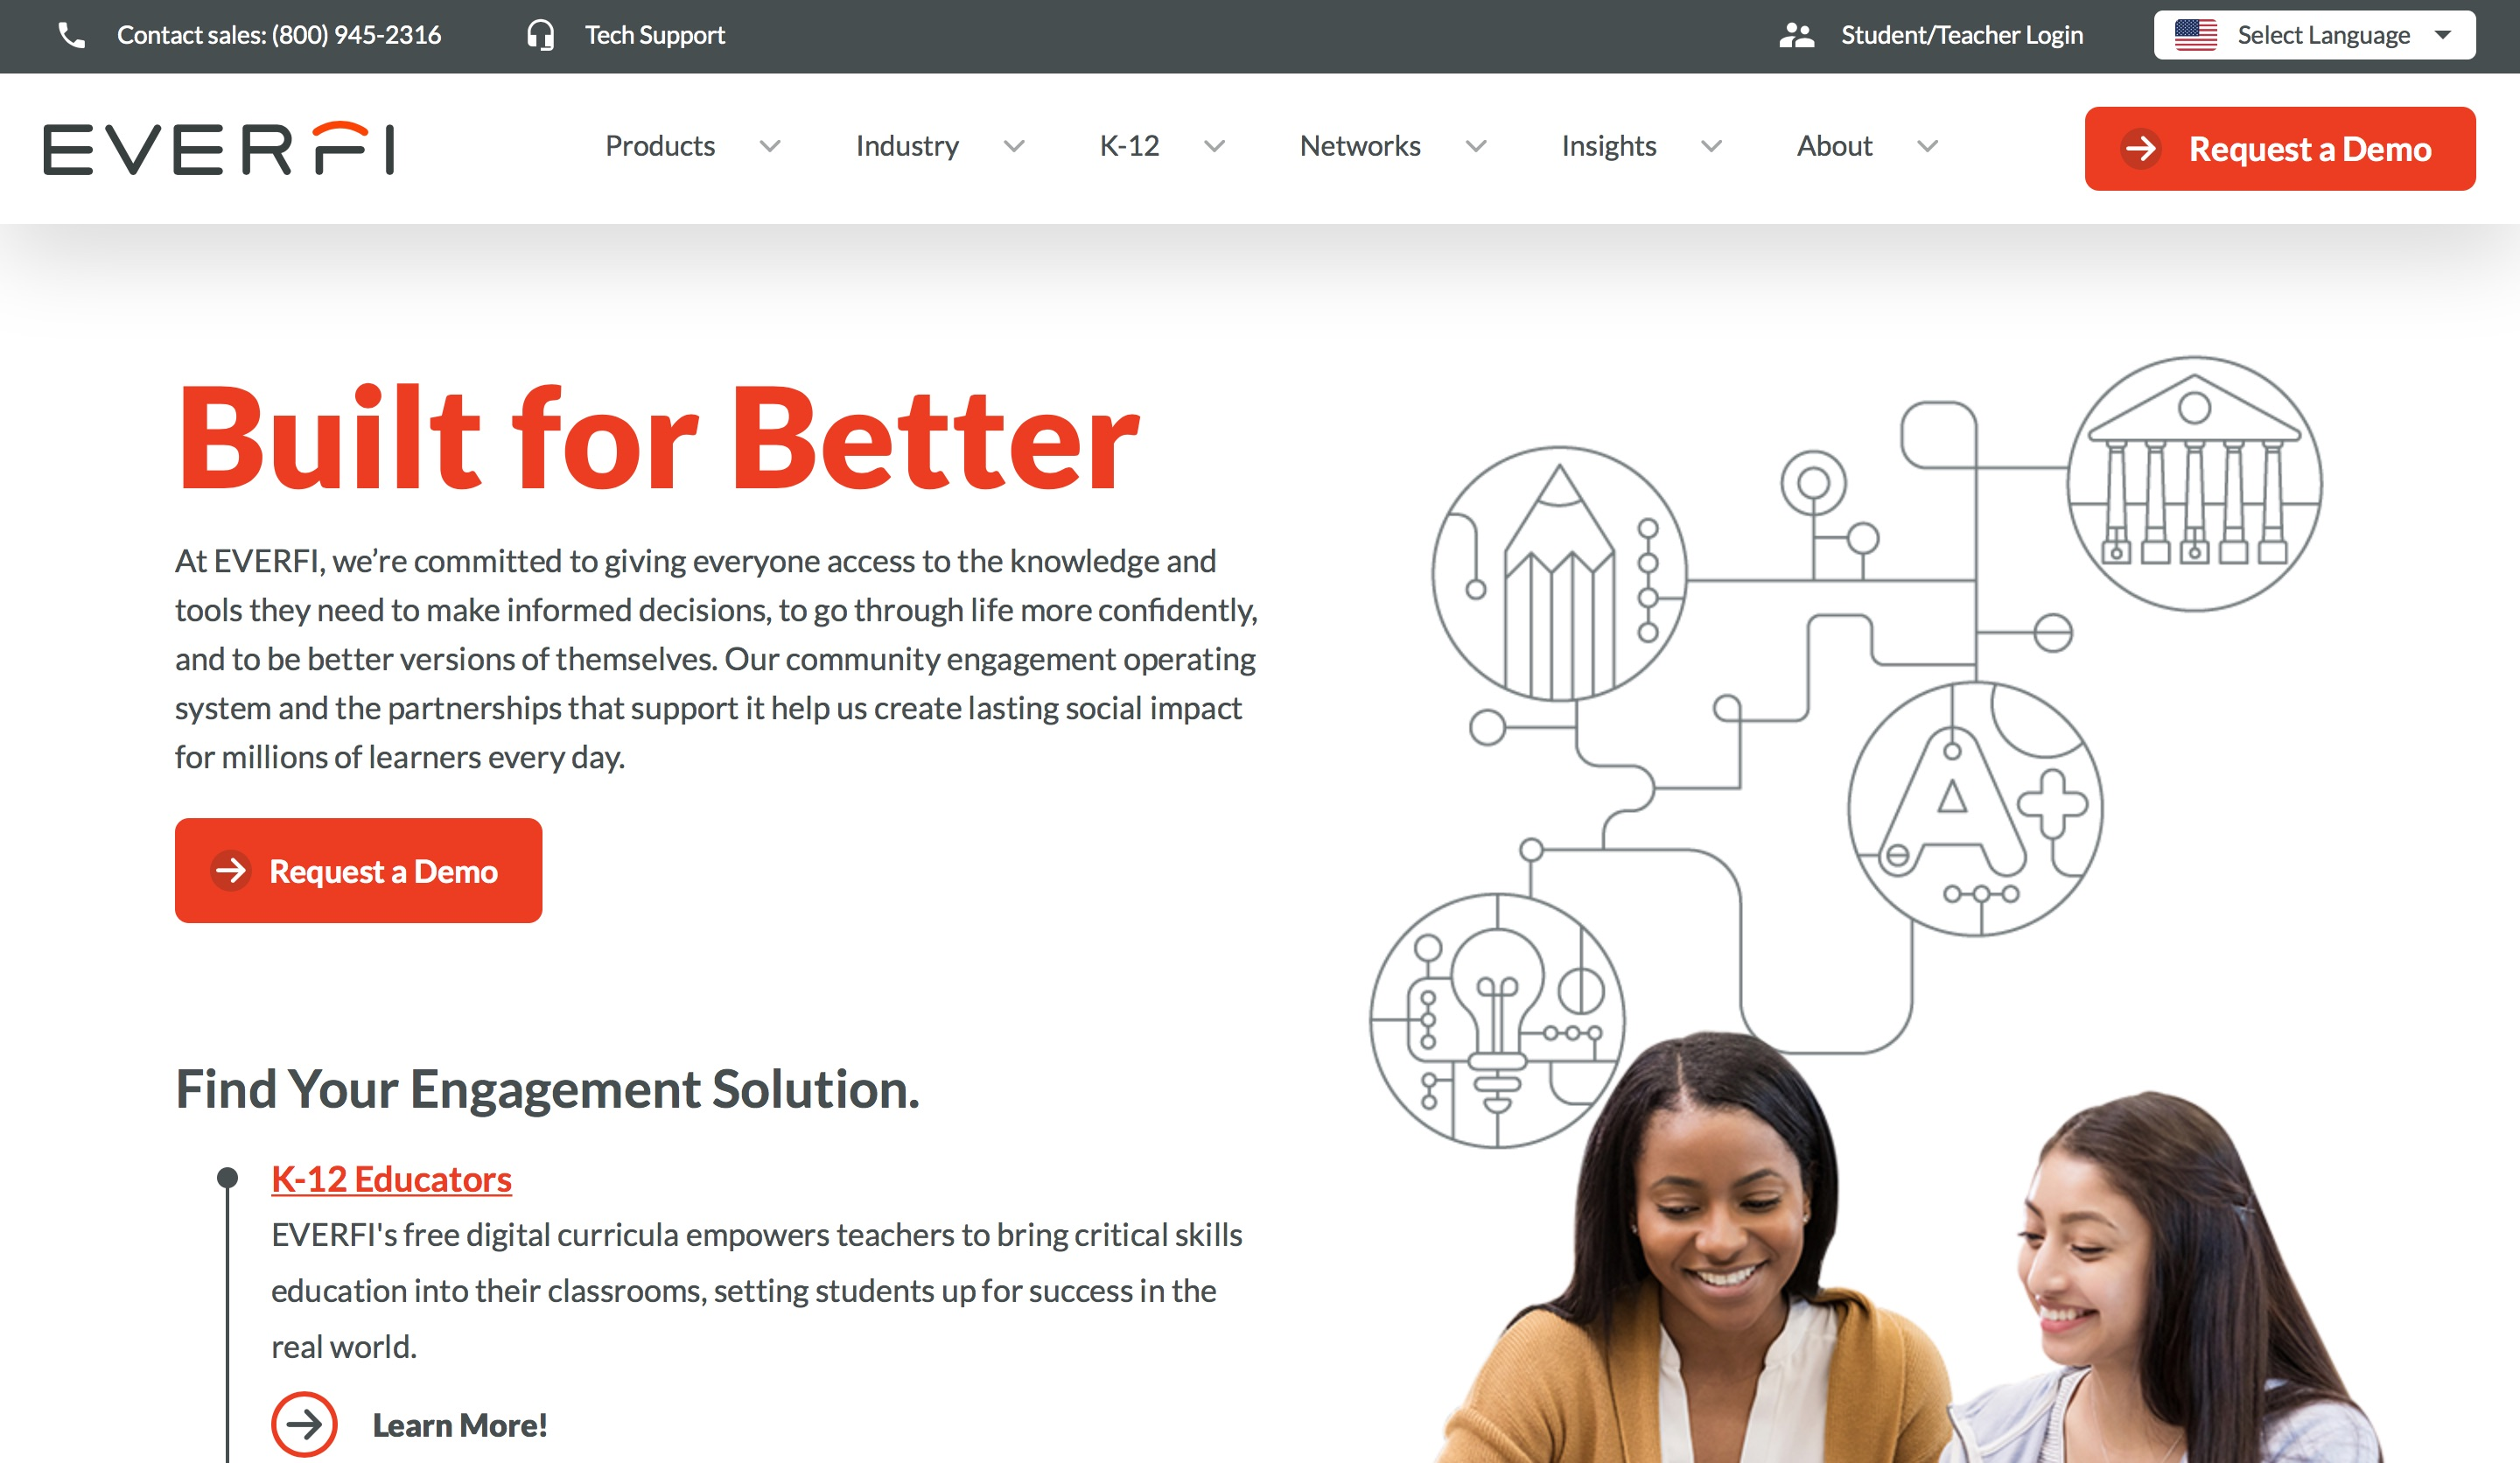 EVERFI and Zelle Partner to Boost Youth Financial Literacy